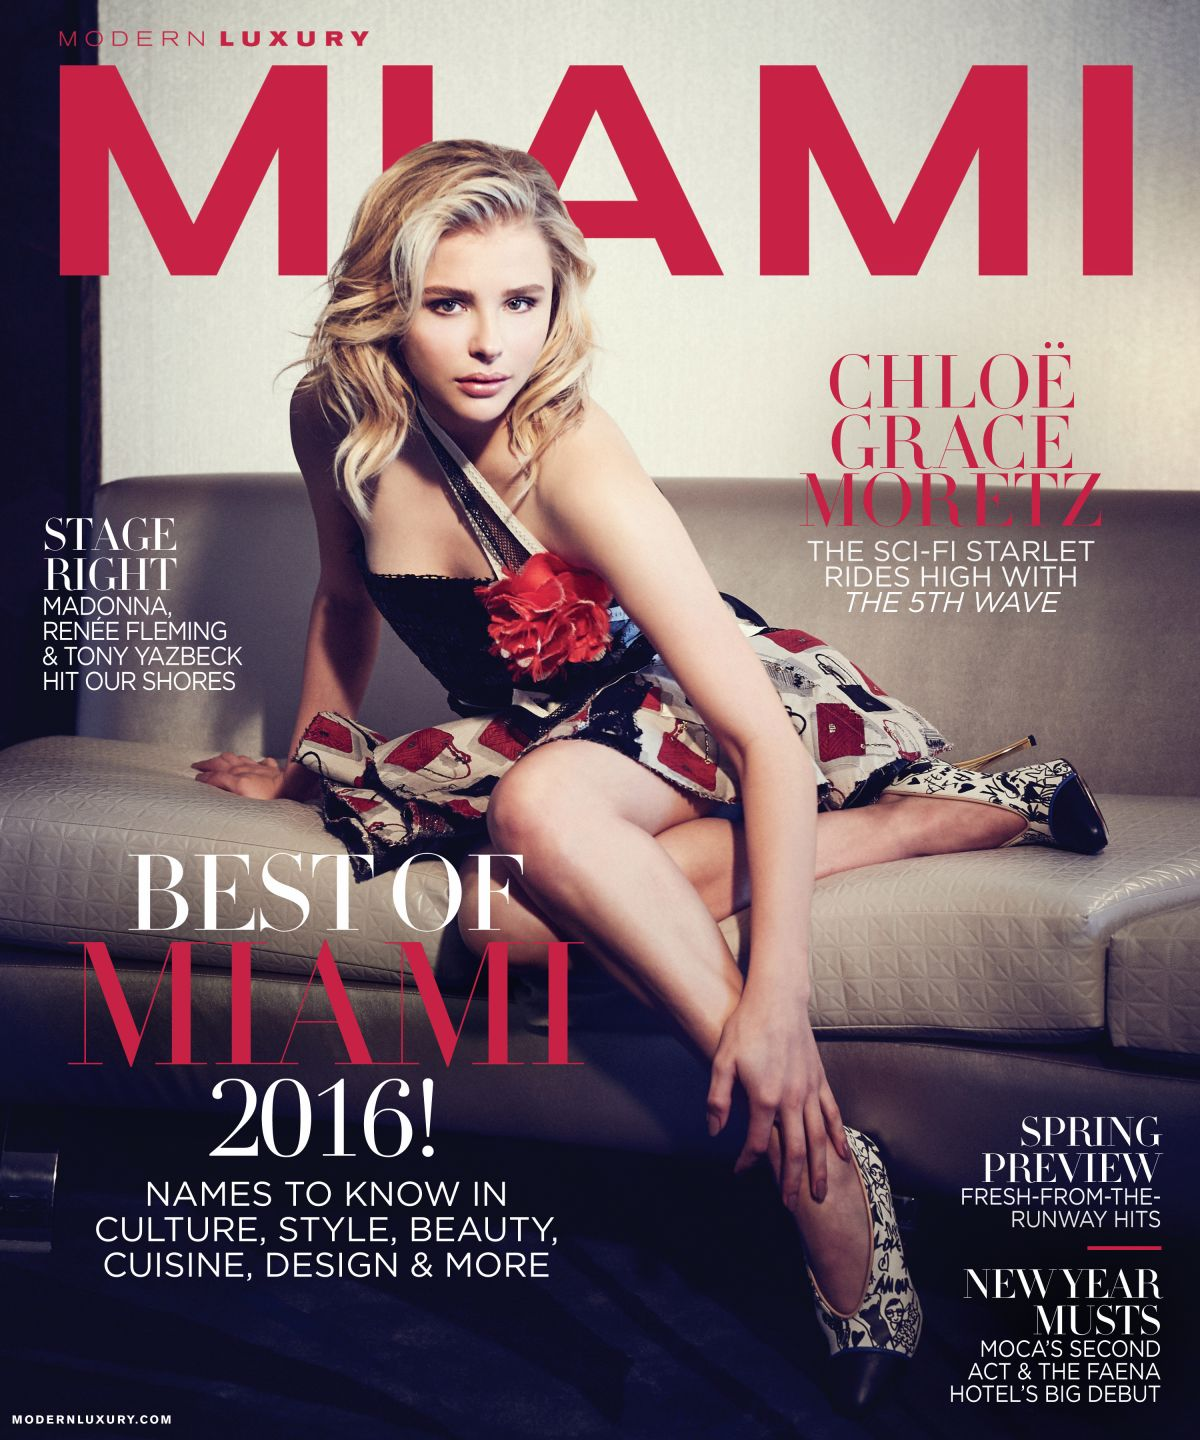 CHLOE MORETZ on the Cover of Modern Luxury Magazine, January/February 2016 Issue